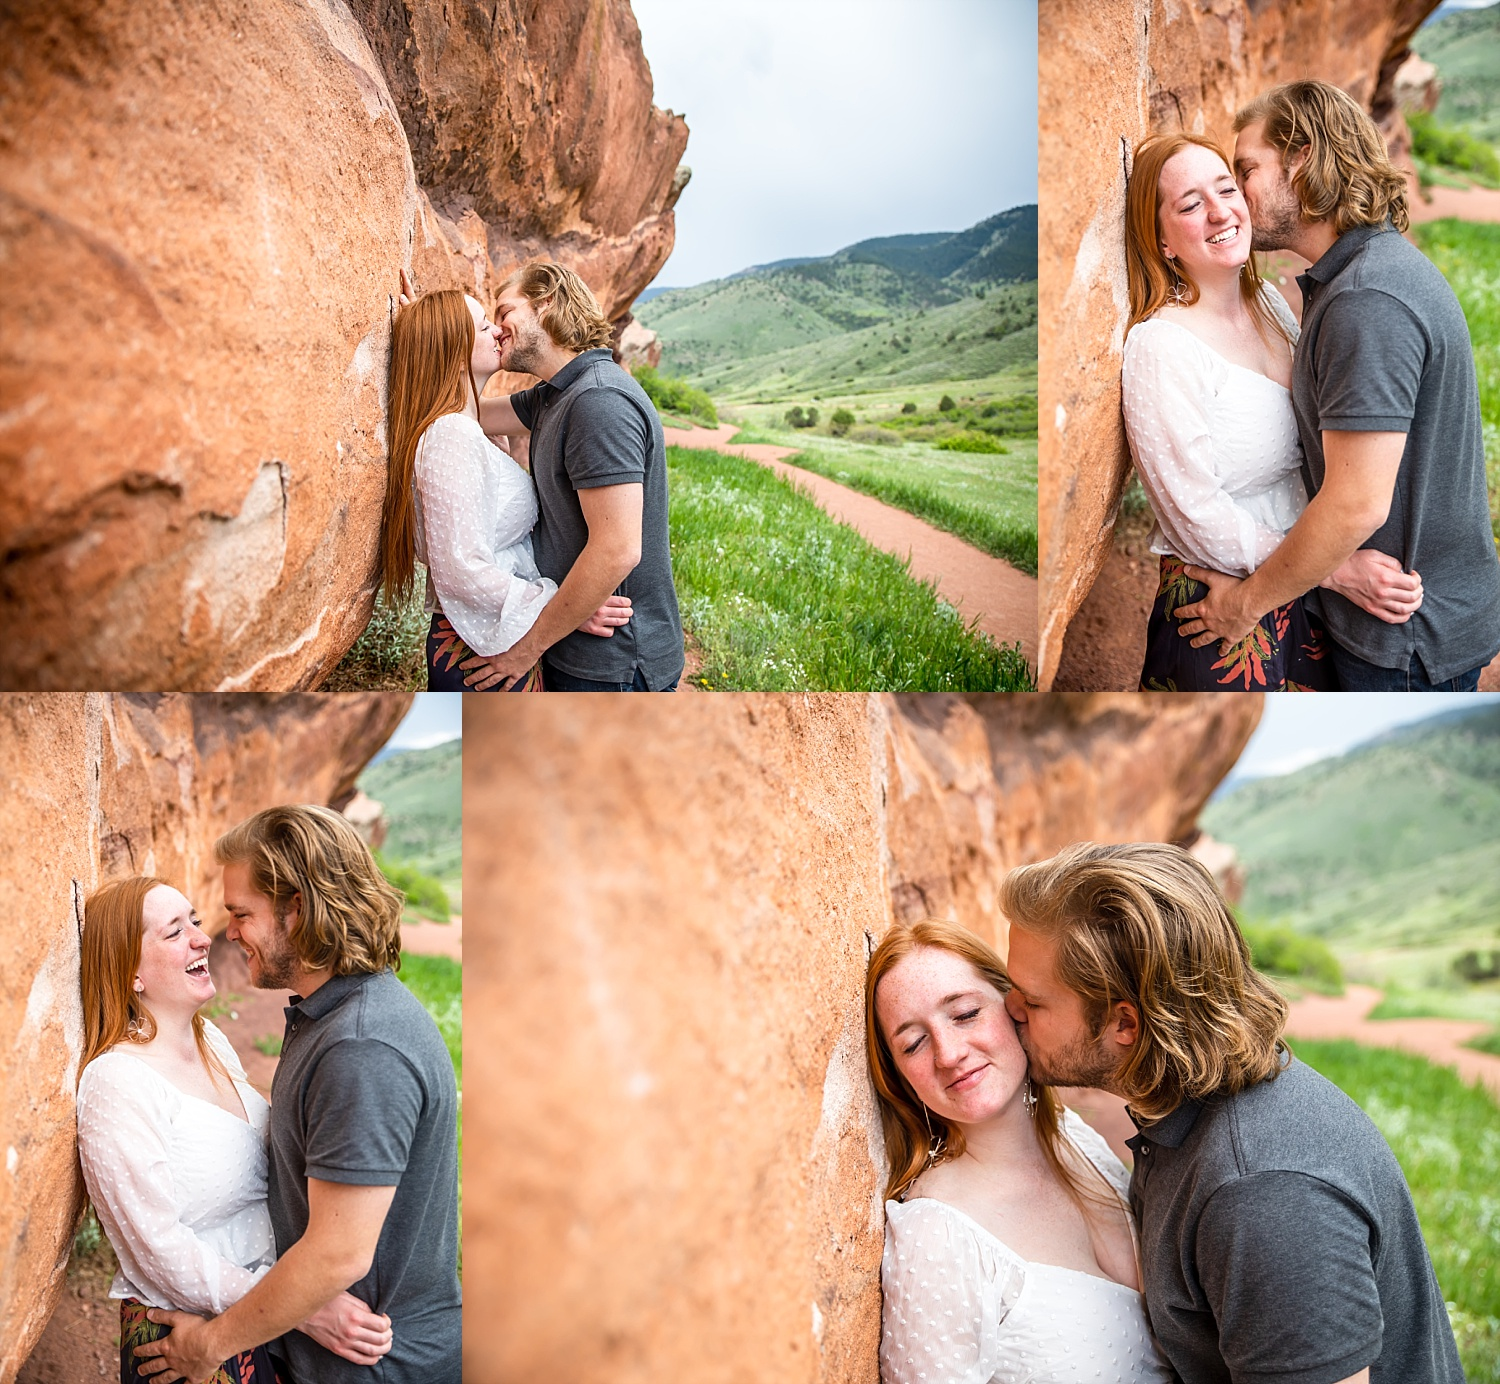 Hannah-cessna-photography-cleveland-ohio-wedding-photograper-Red-Rock-Ampitheatrer-Engagement-Denver-Colorado_0140.jpg